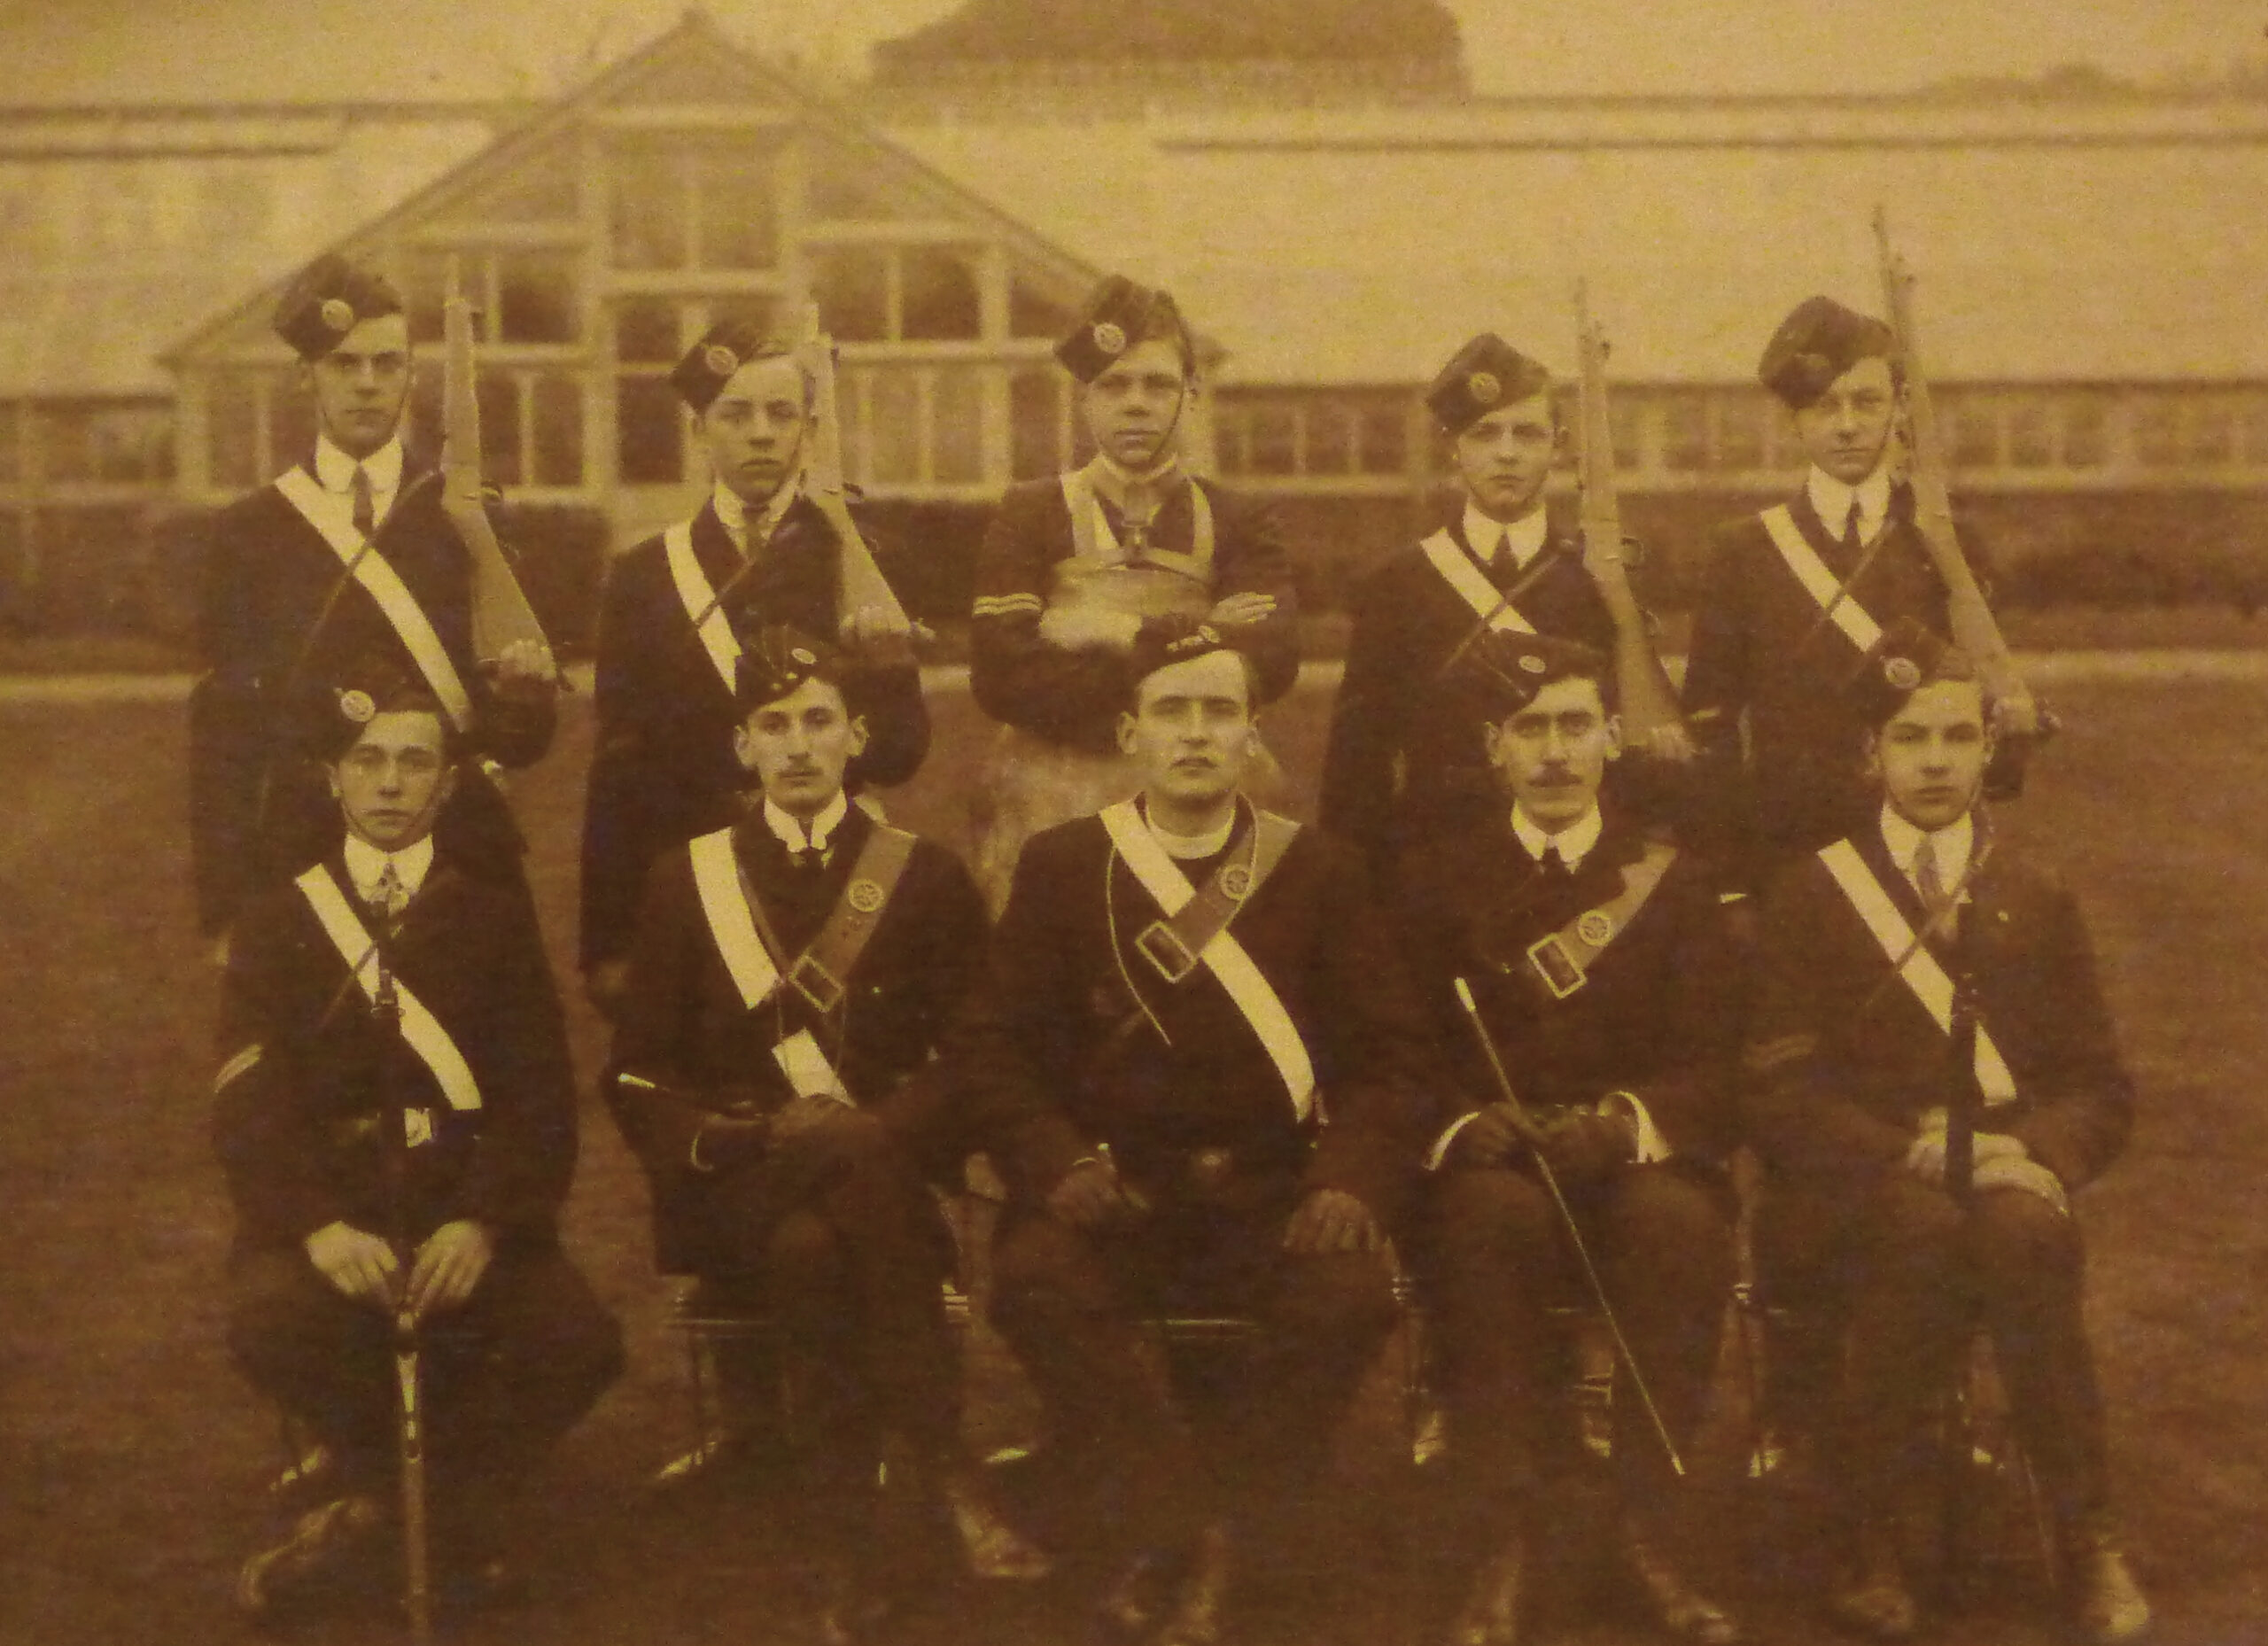 St Peter's in Thanet Company Church Lads Brigade 1909